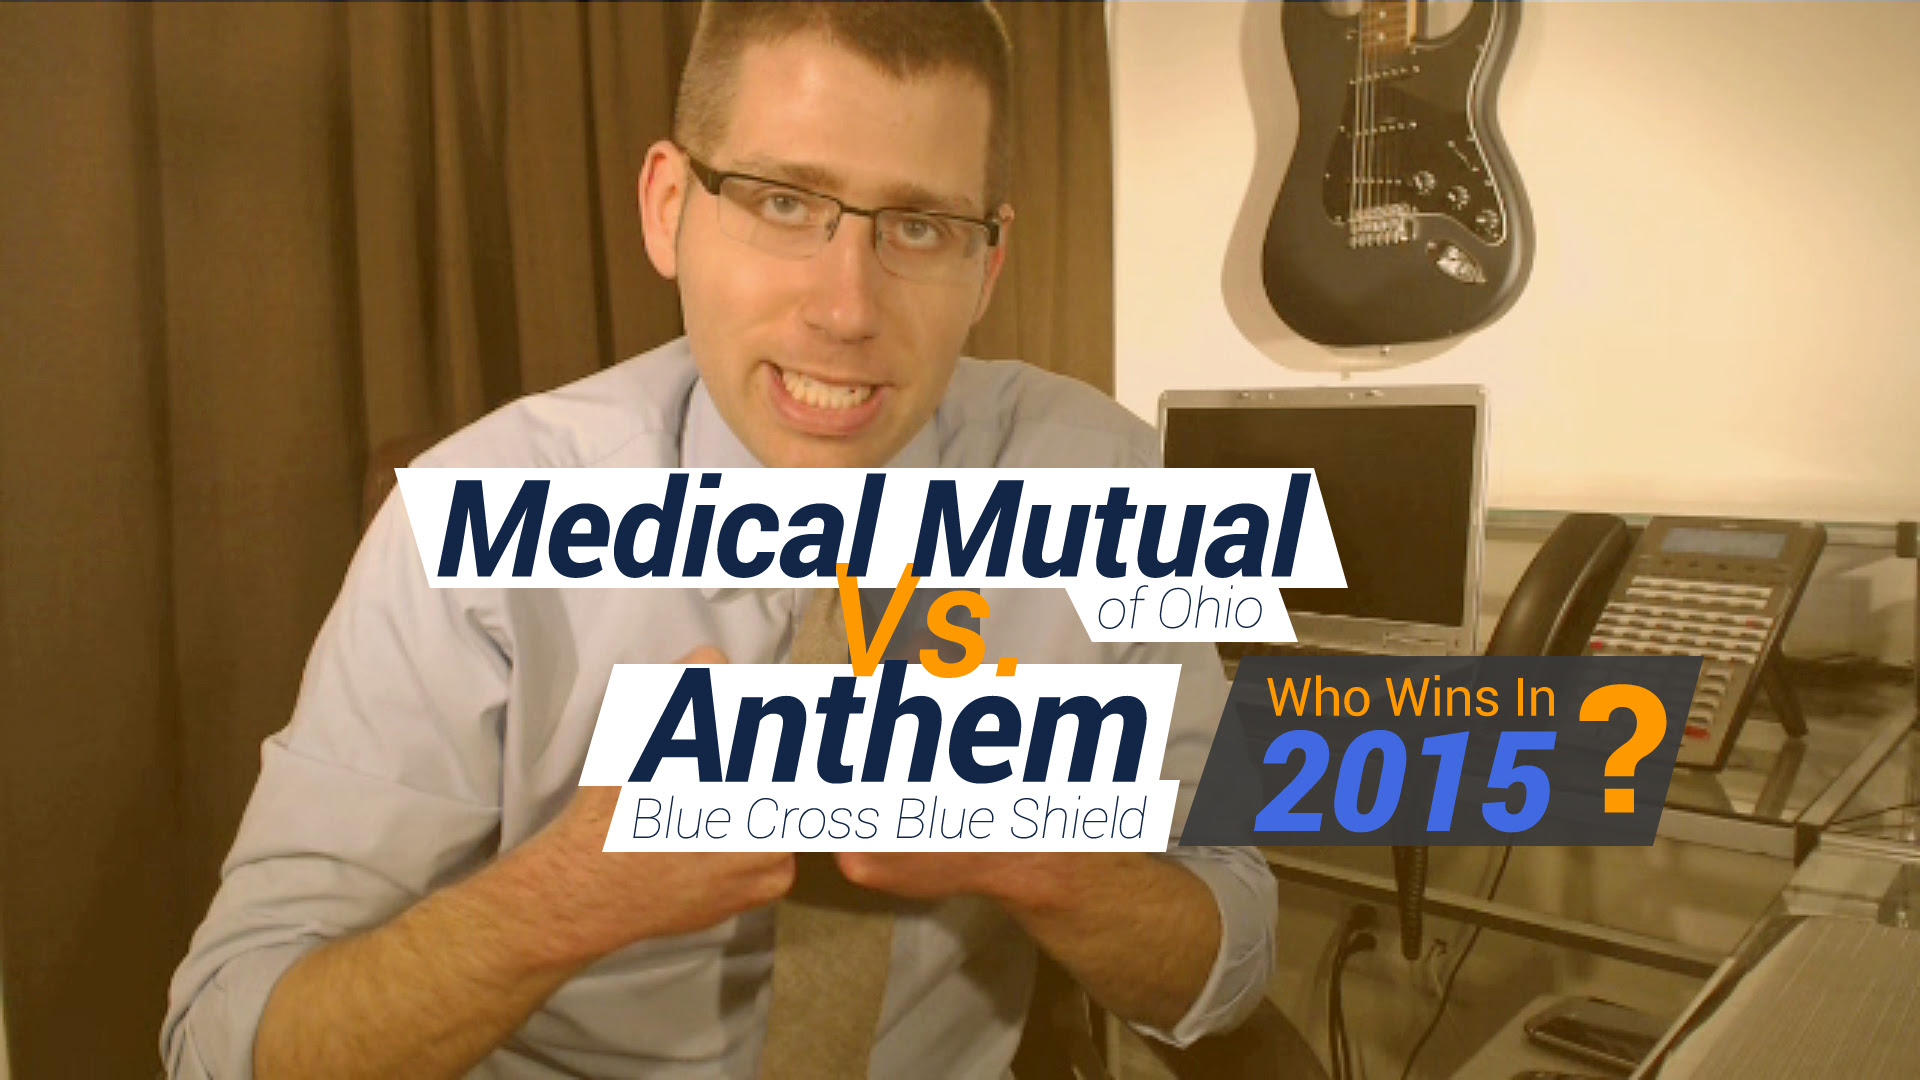 Medical Mutual of Ohio Vs. Anthem Blue Cross Blue Shield